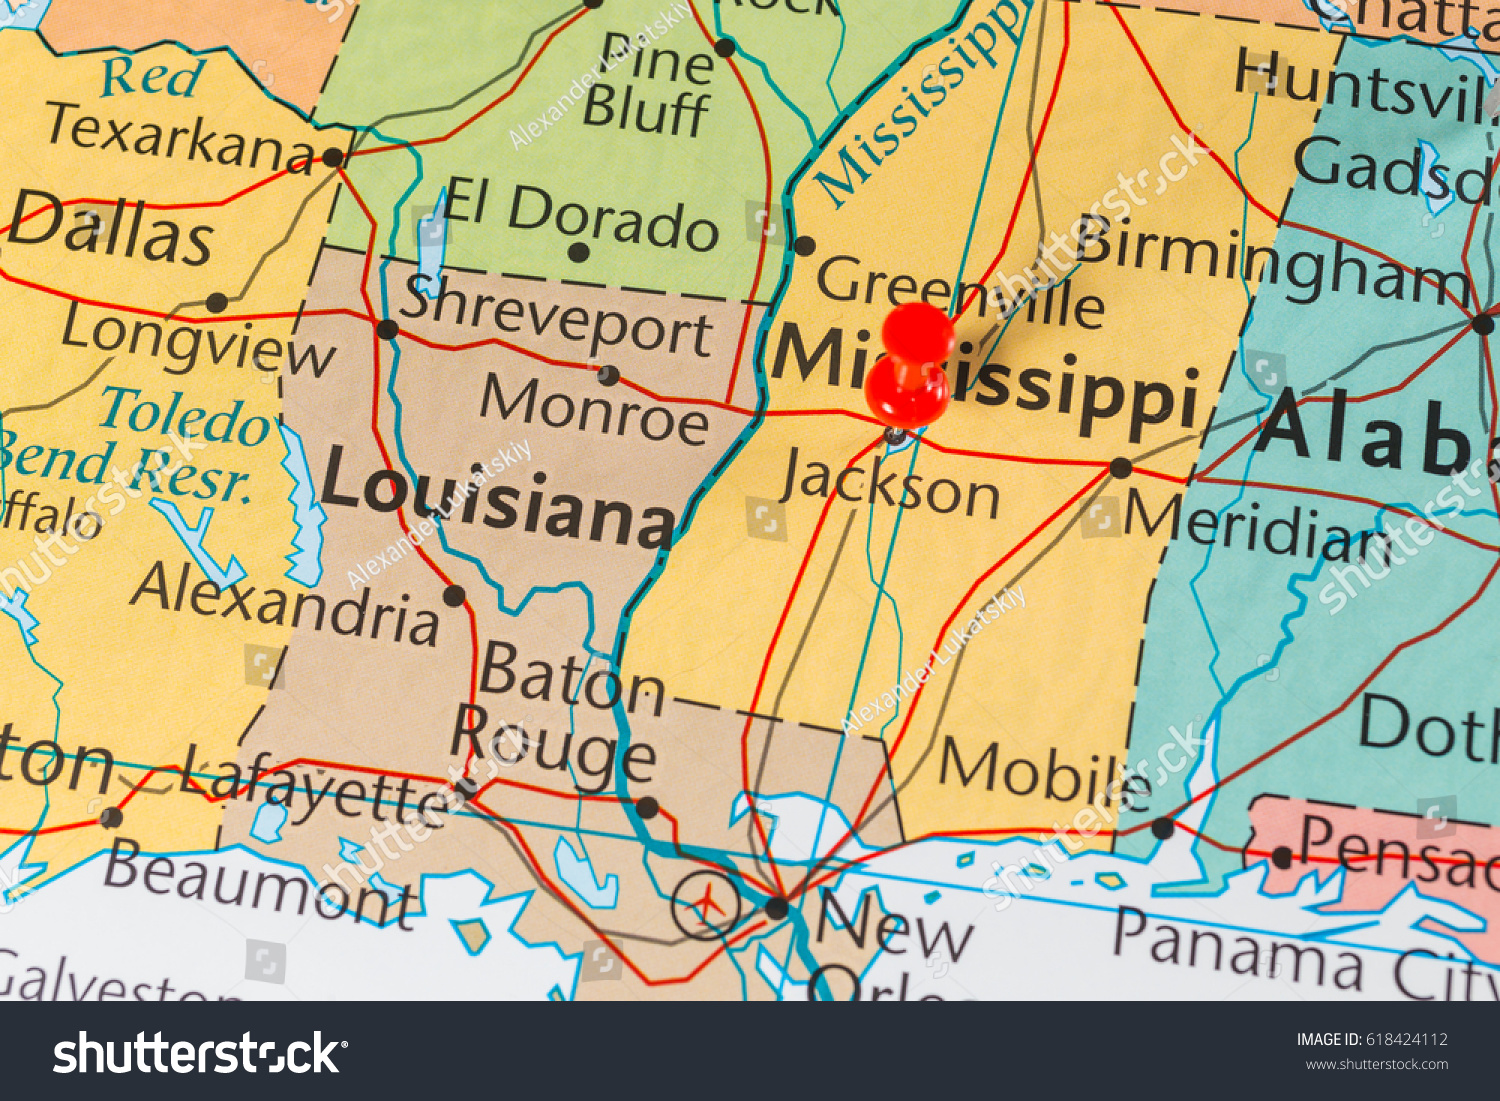 mississippi on map united states stock